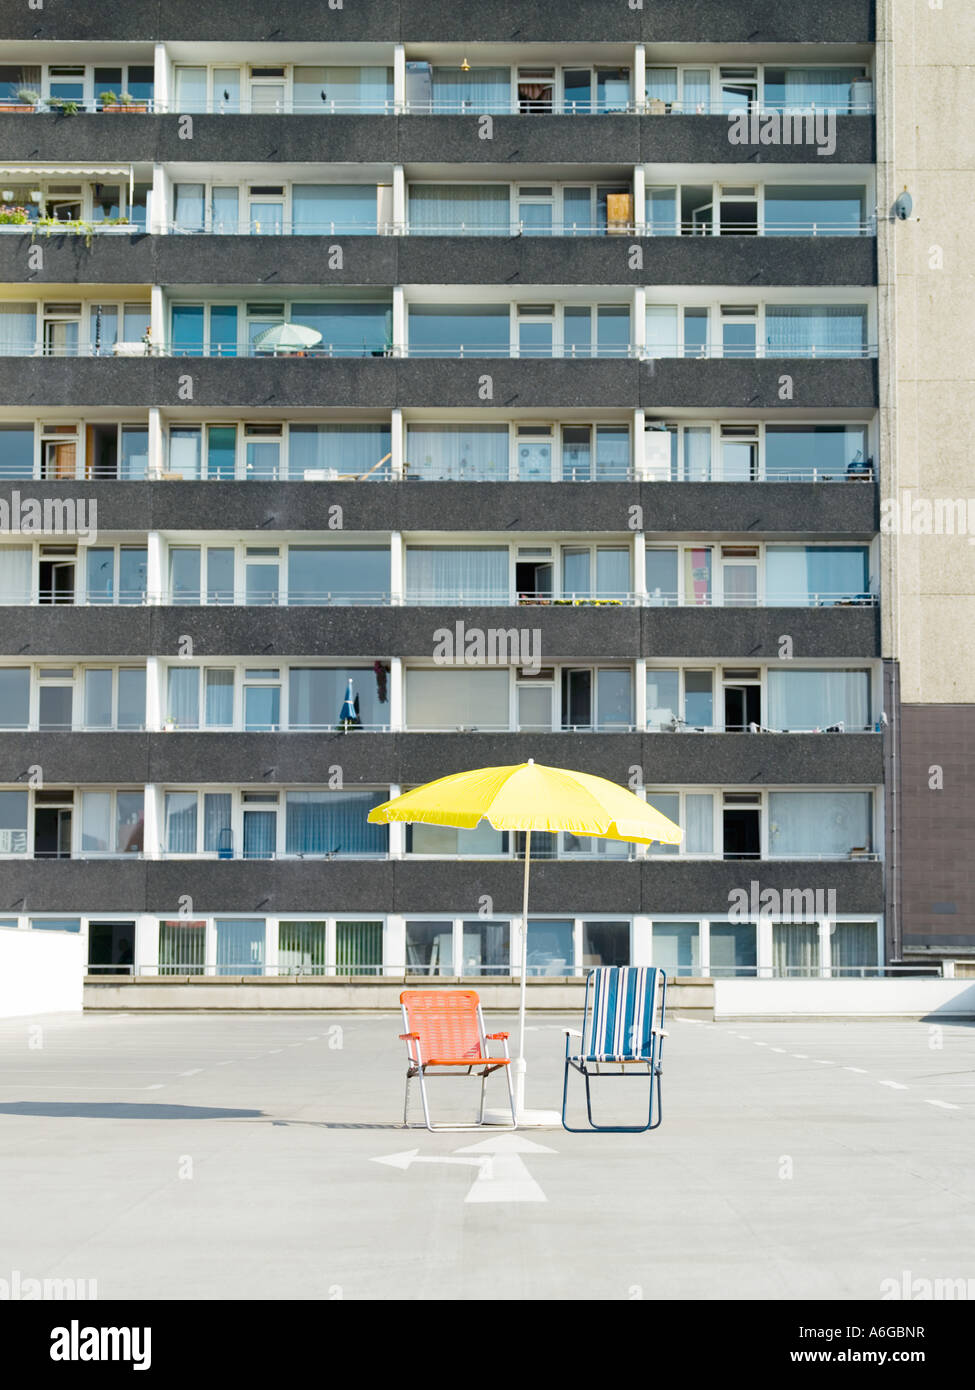 Deckchairs and parasol outside apartment building - Stock Image